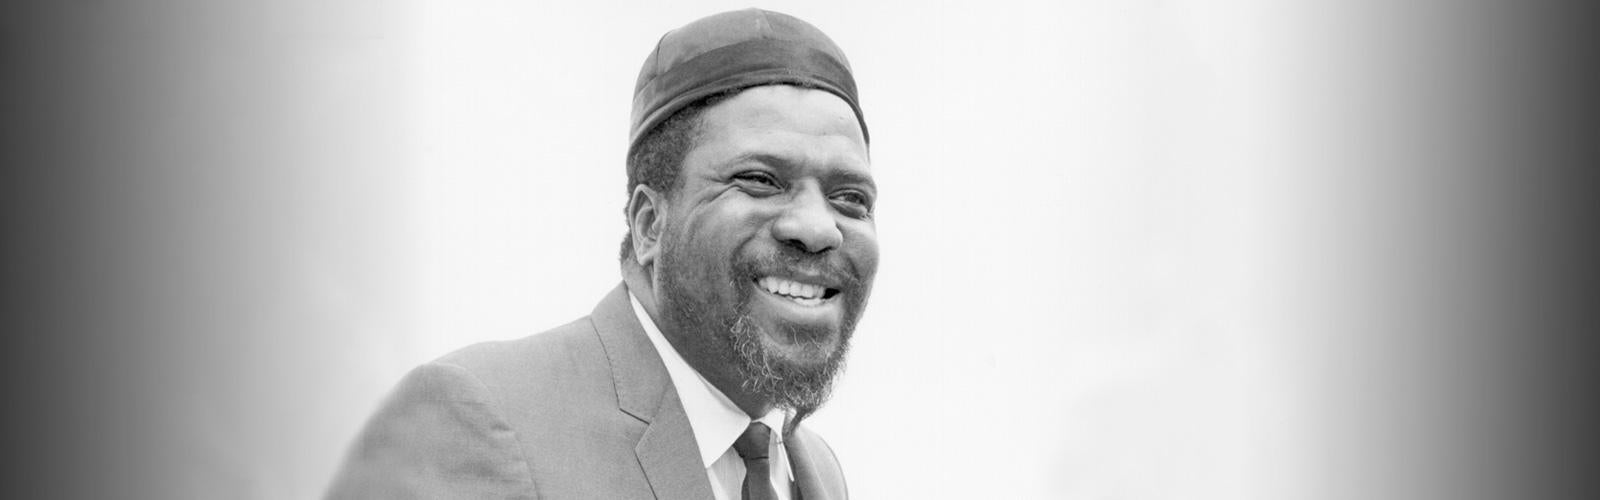 Thelonious Monk Jazz Musician